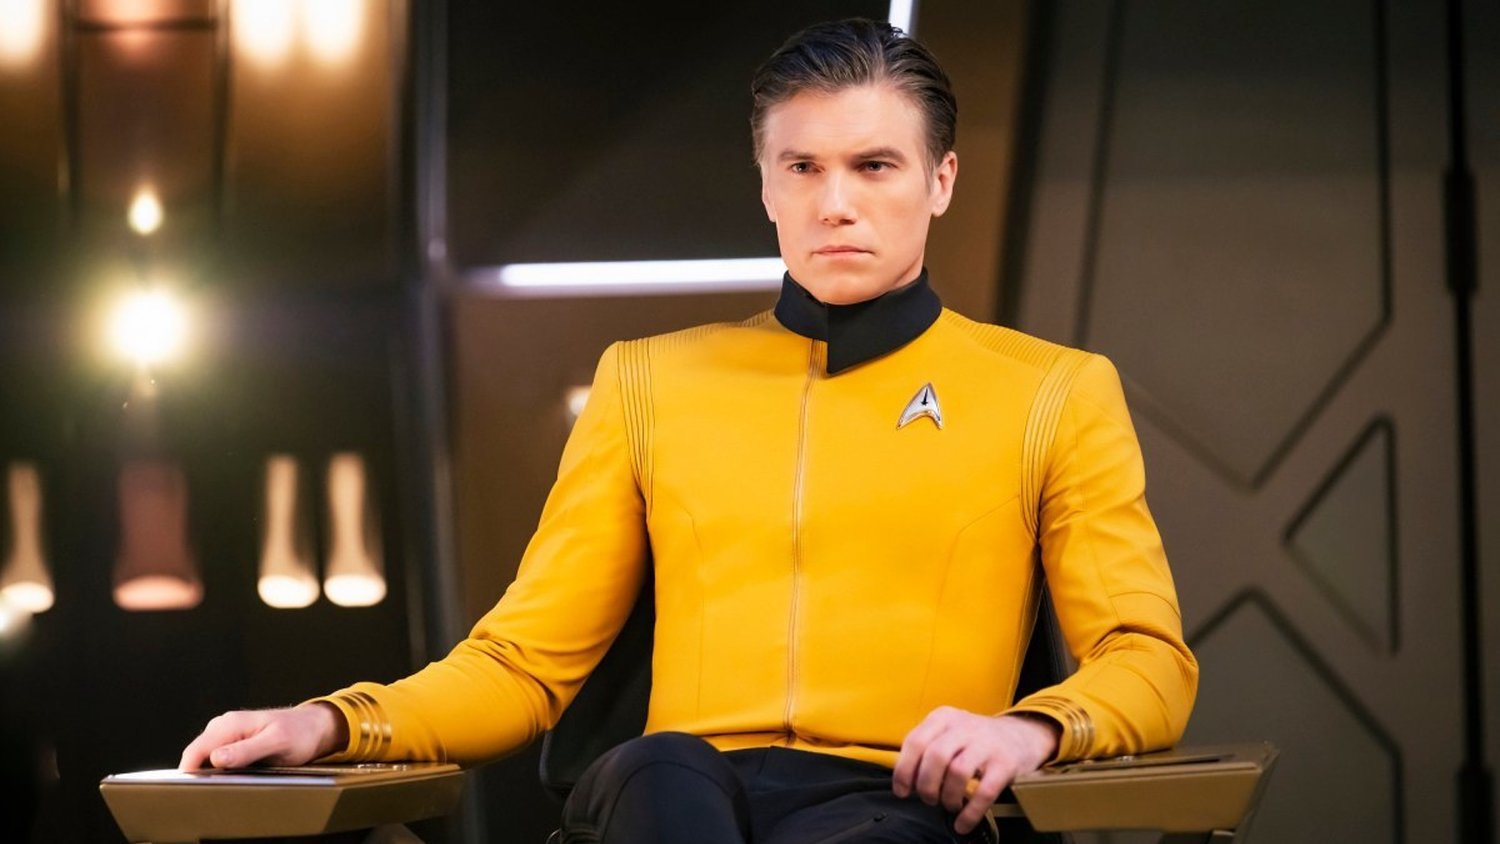 Star Trek Discovery star says Captain Pike is 'the opposite' of Captain Kirk